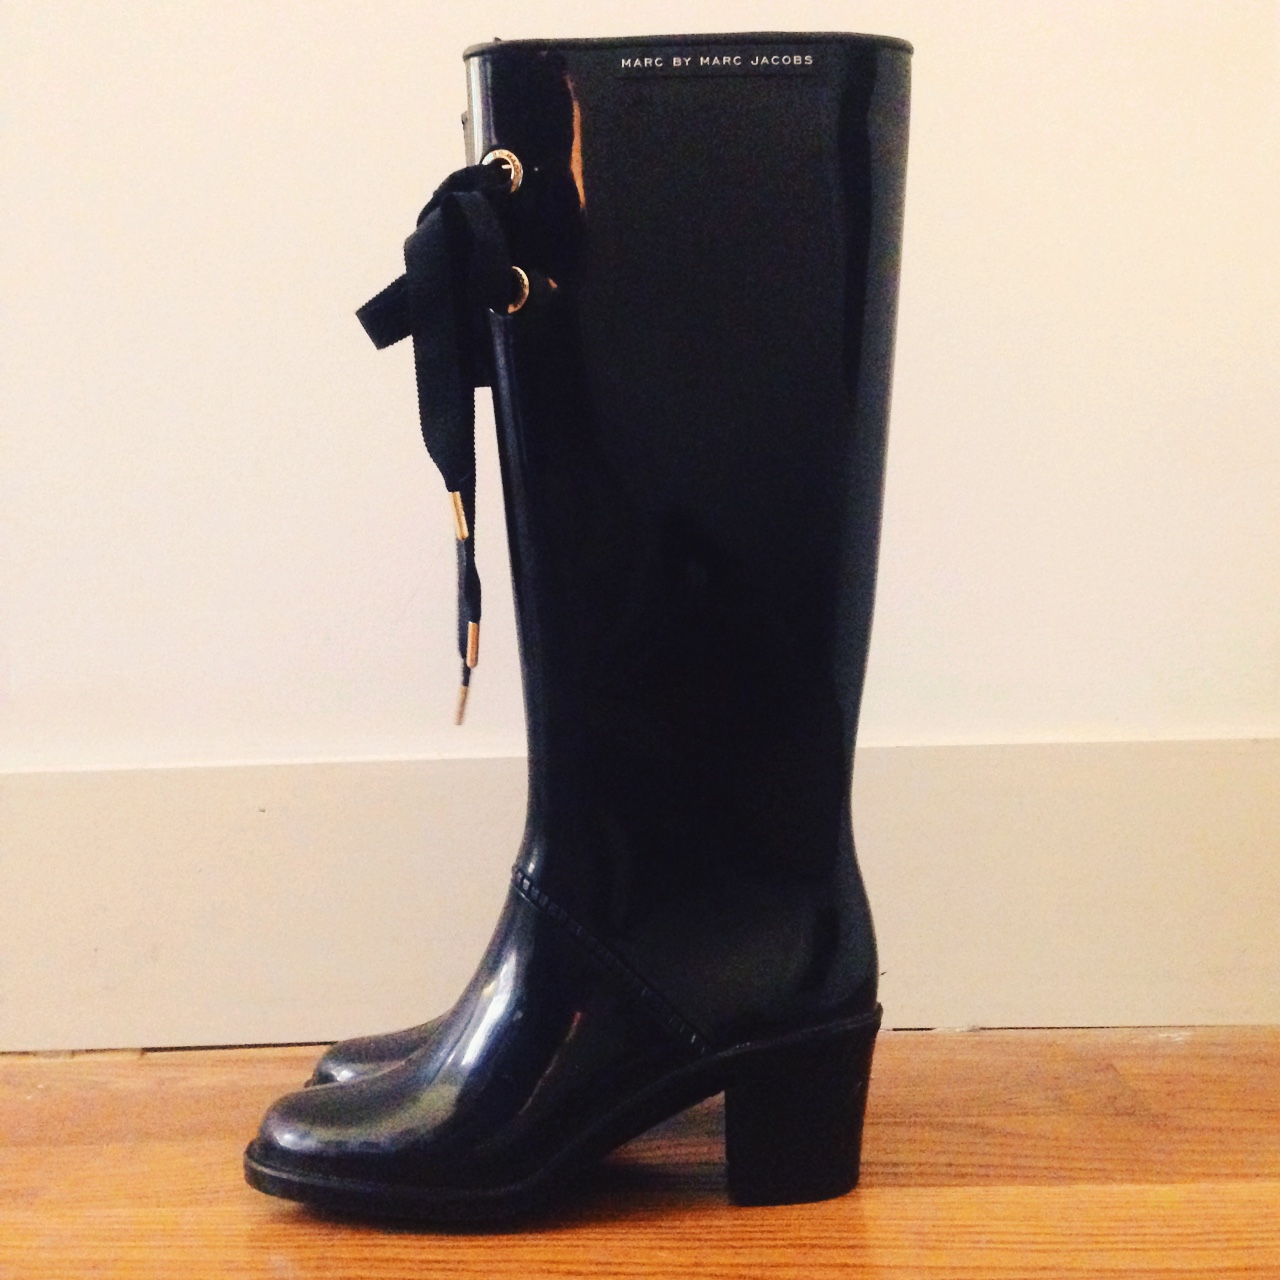 MARC BY MARC JACOBS Black High Heeled Rain Boots | vogue